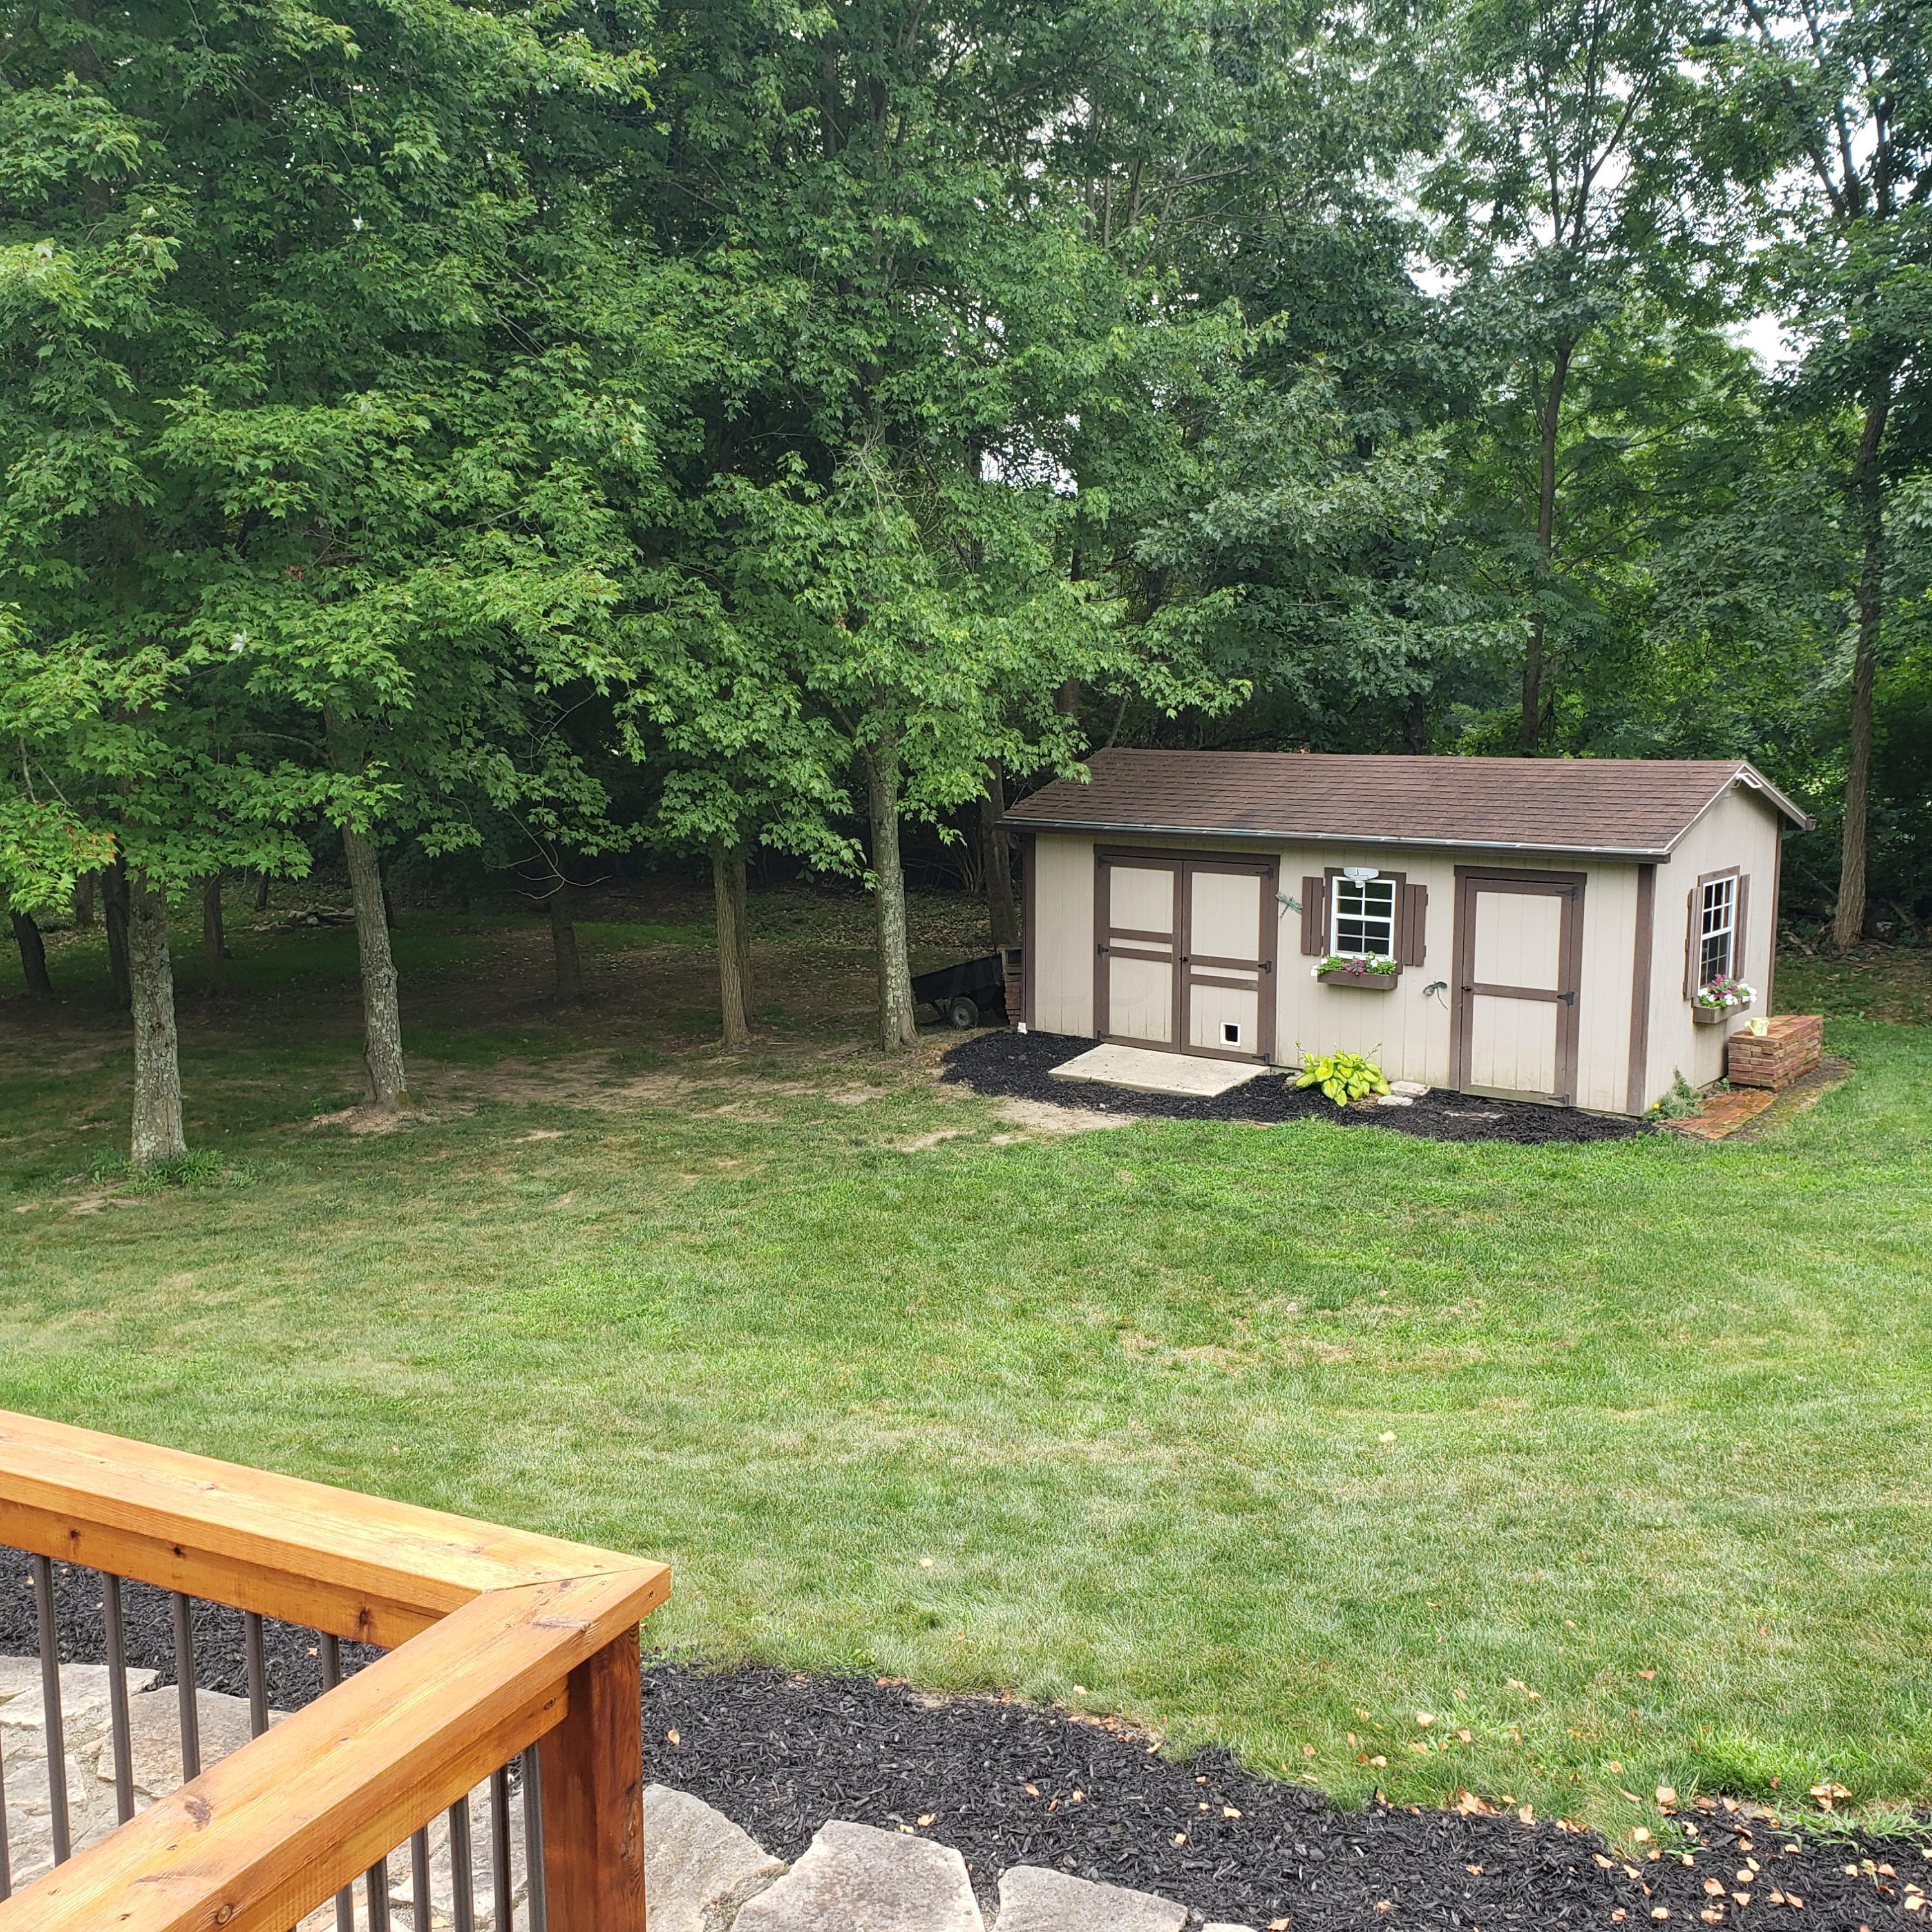 1503 Malabar Court, Delaware, Ohio 43015, 4 Bedrooms Bedrooms, ,4 BathroomsBathrooms,Residential,For Sale,Malabar,220025507